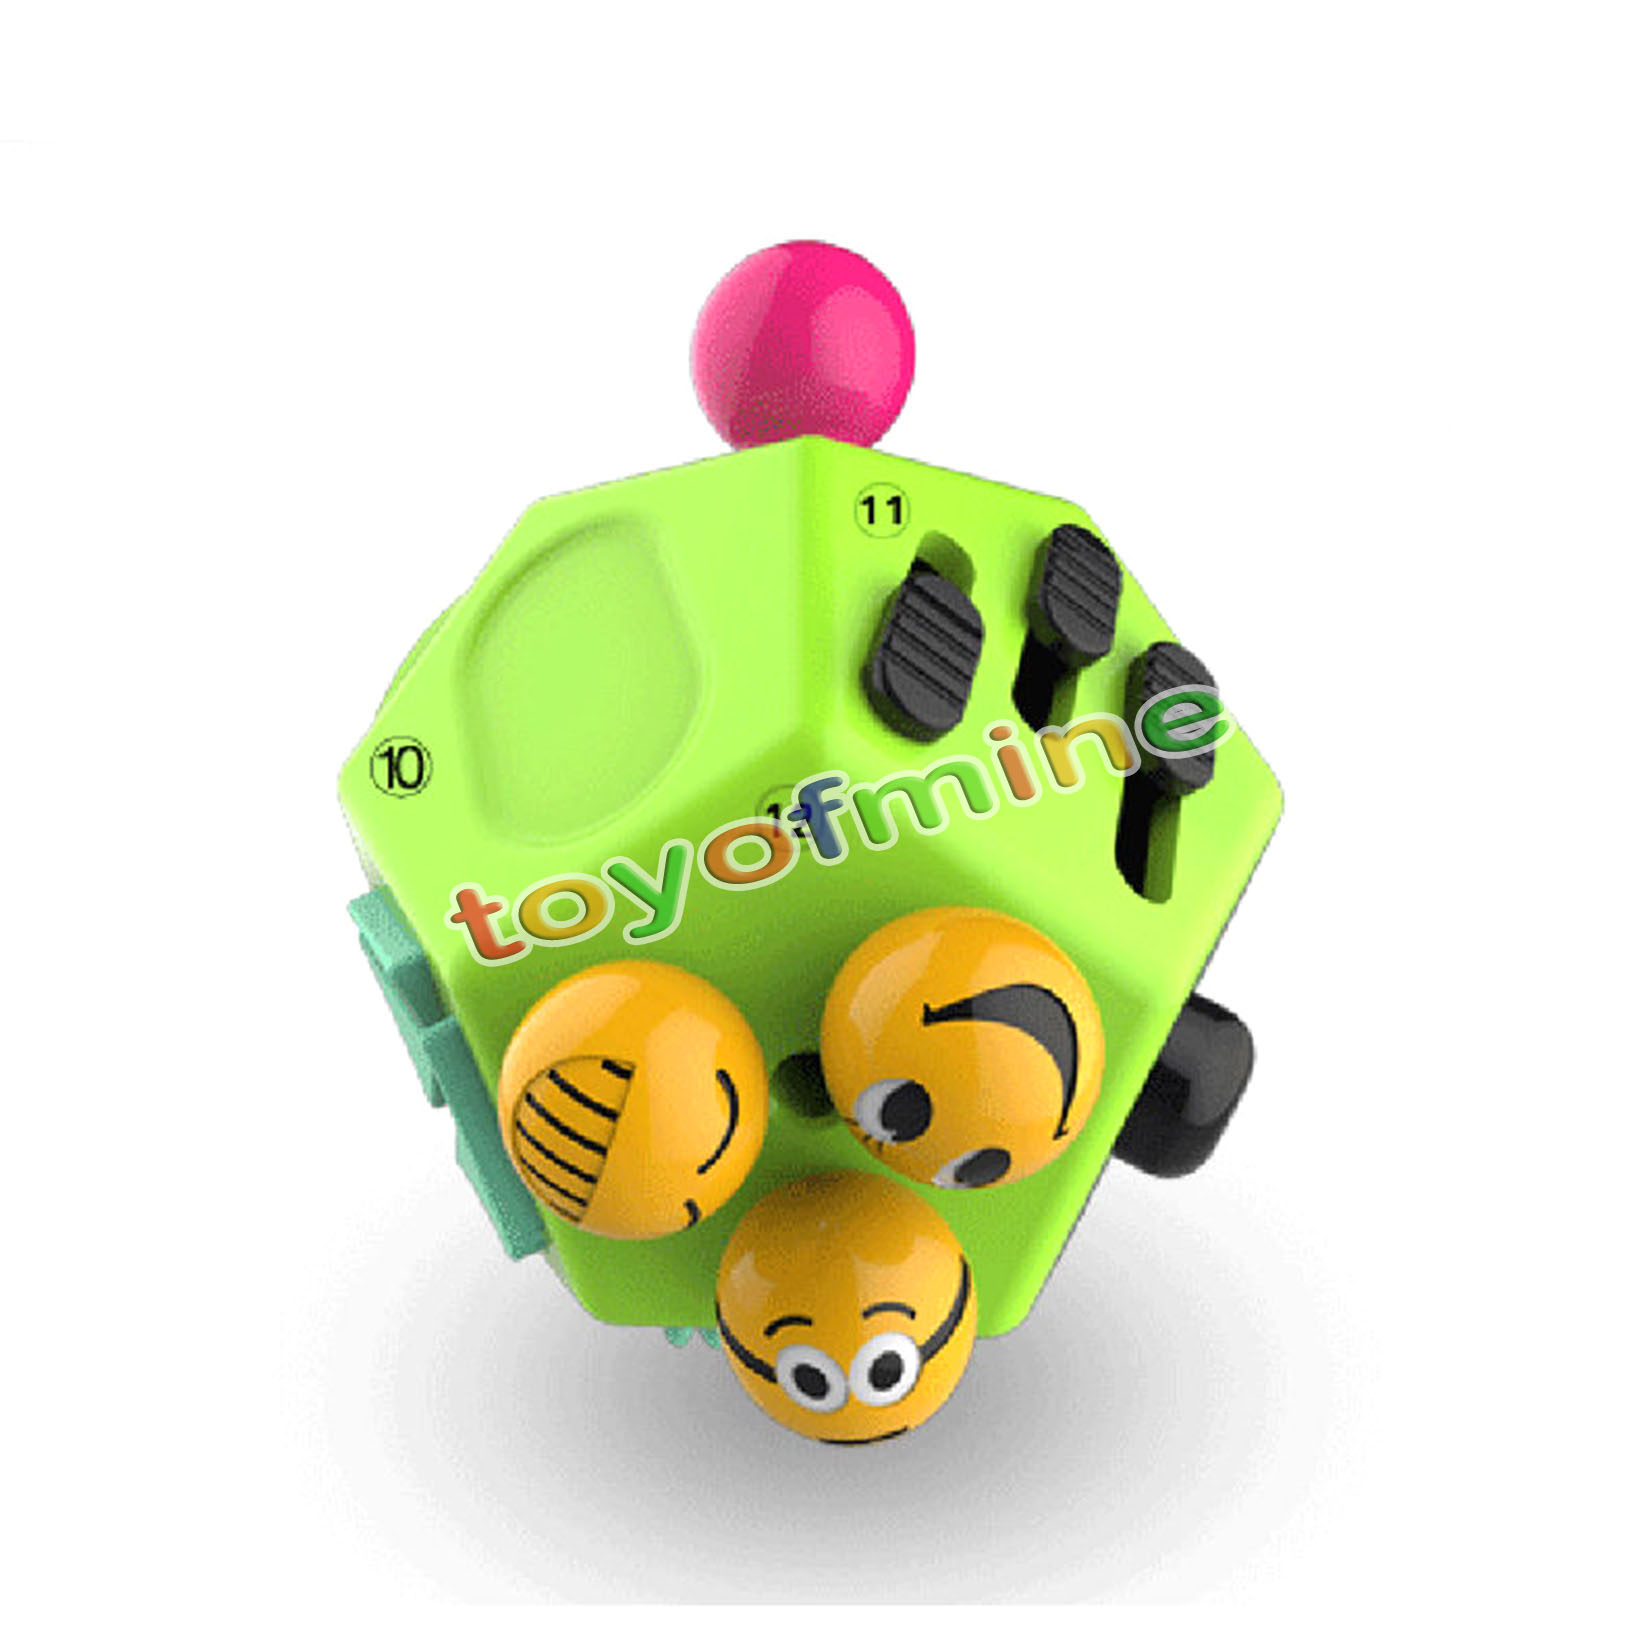 Autism Toys For Adults : Fidget cube toy Ⅱ anxiety stress relief autism side